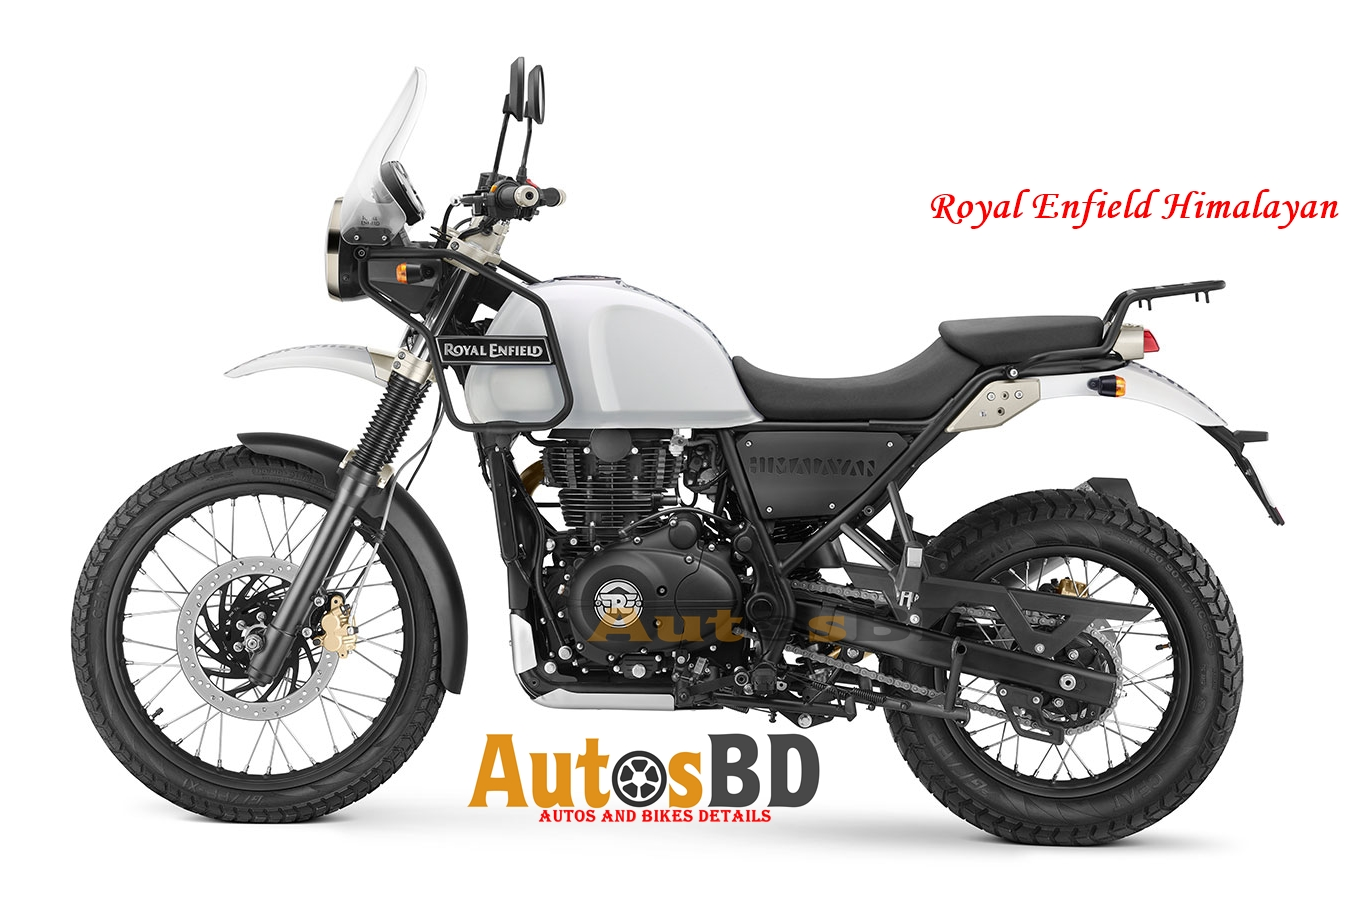 Royal Enfield Himalayan Specification